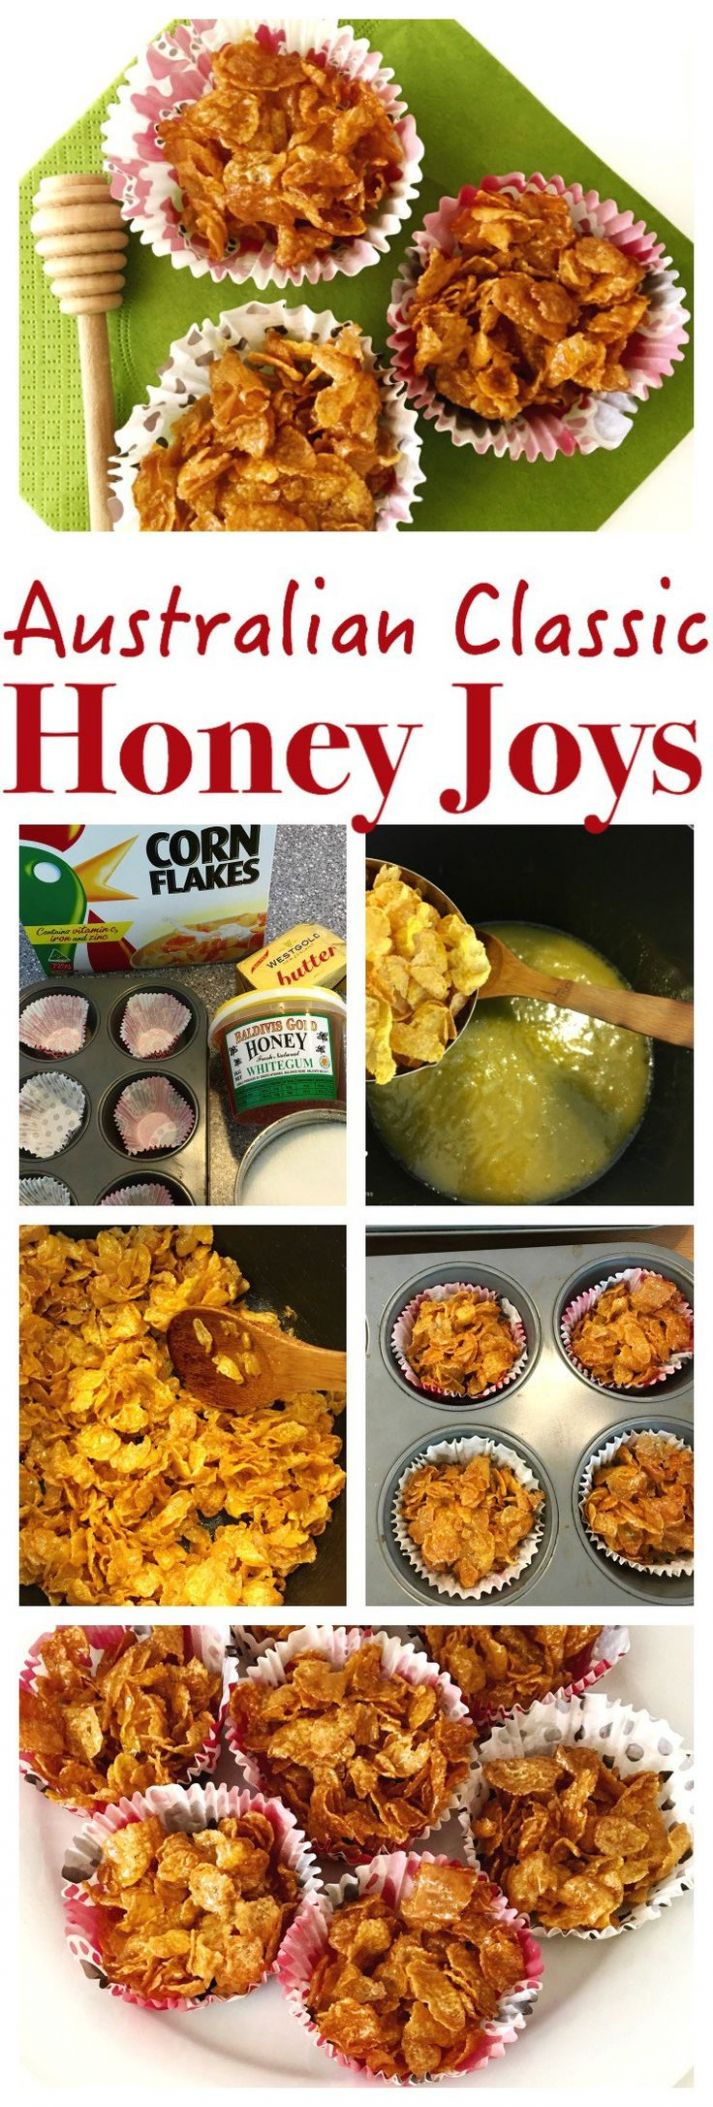 Australian Honey Joys - Easy Recipes Australia